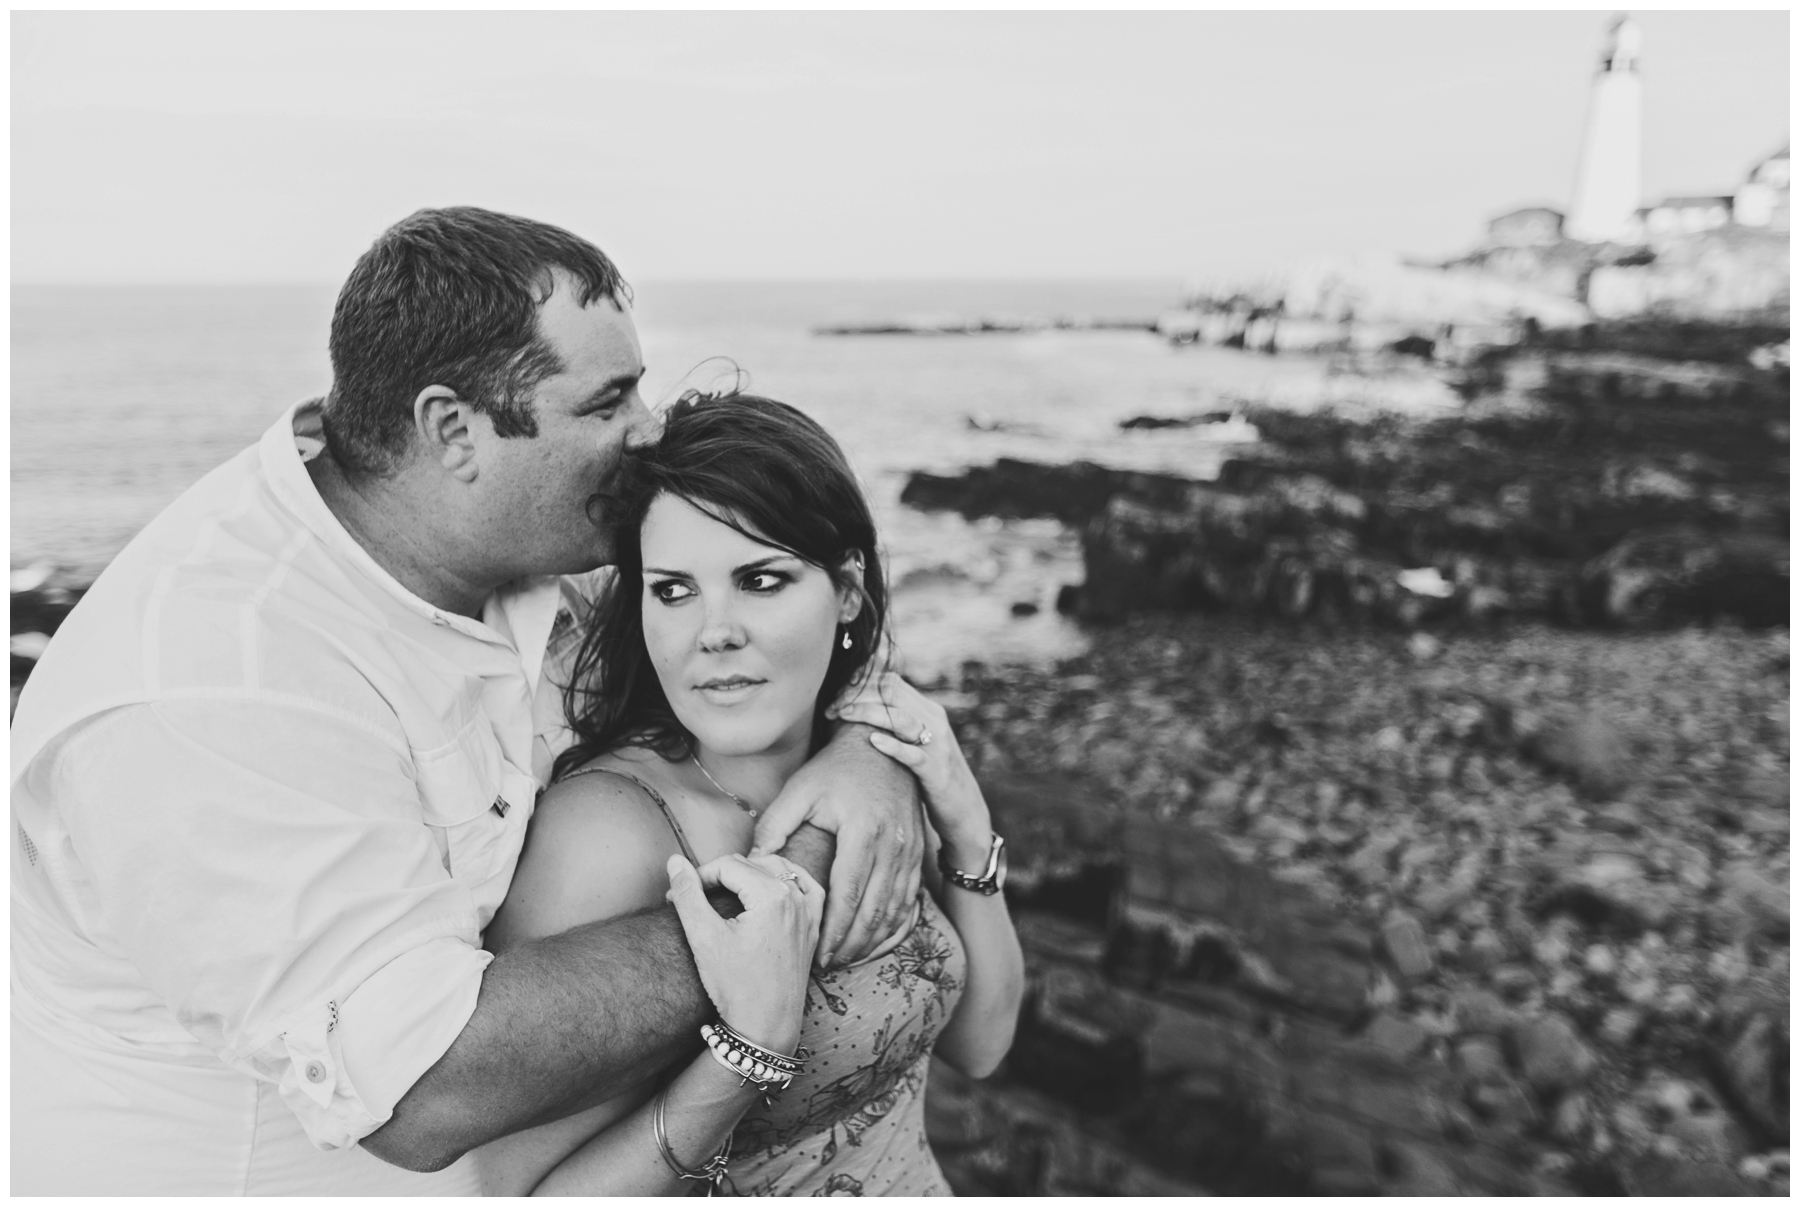 Maine_Photographer_Engagements_FortWilliams_PortlandHeadLight_lighthouse_coastal_seaside-001